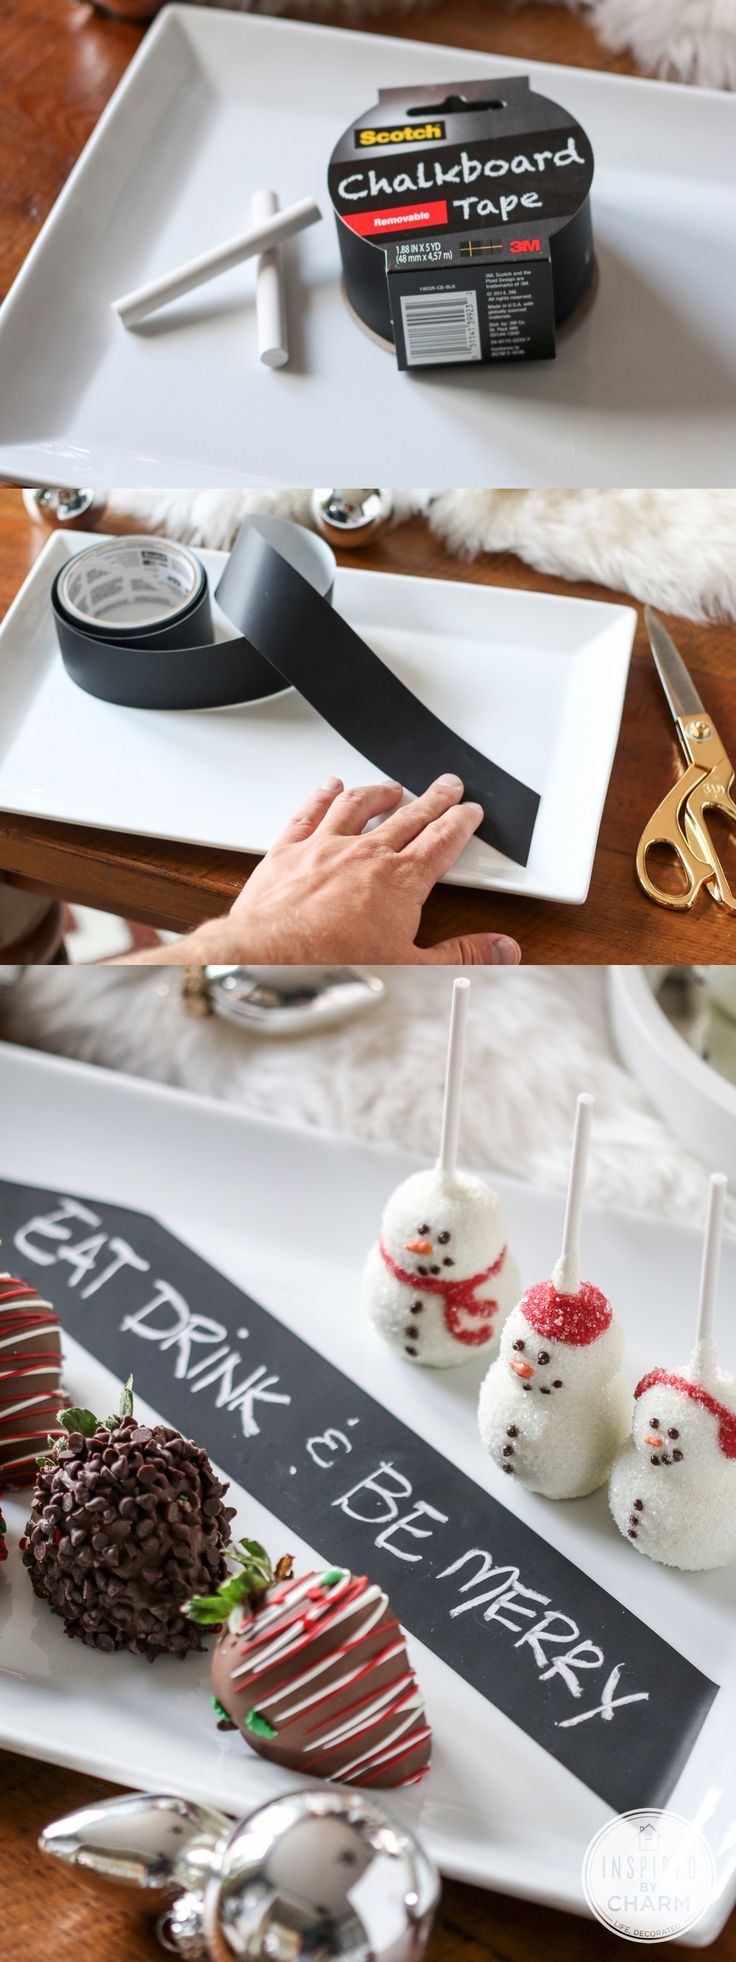 Add a chalkboard label to your serveware to write out a merry message or label your sweet treats! The best part? The tape peels right off when you're done! #12days72ideas Nx